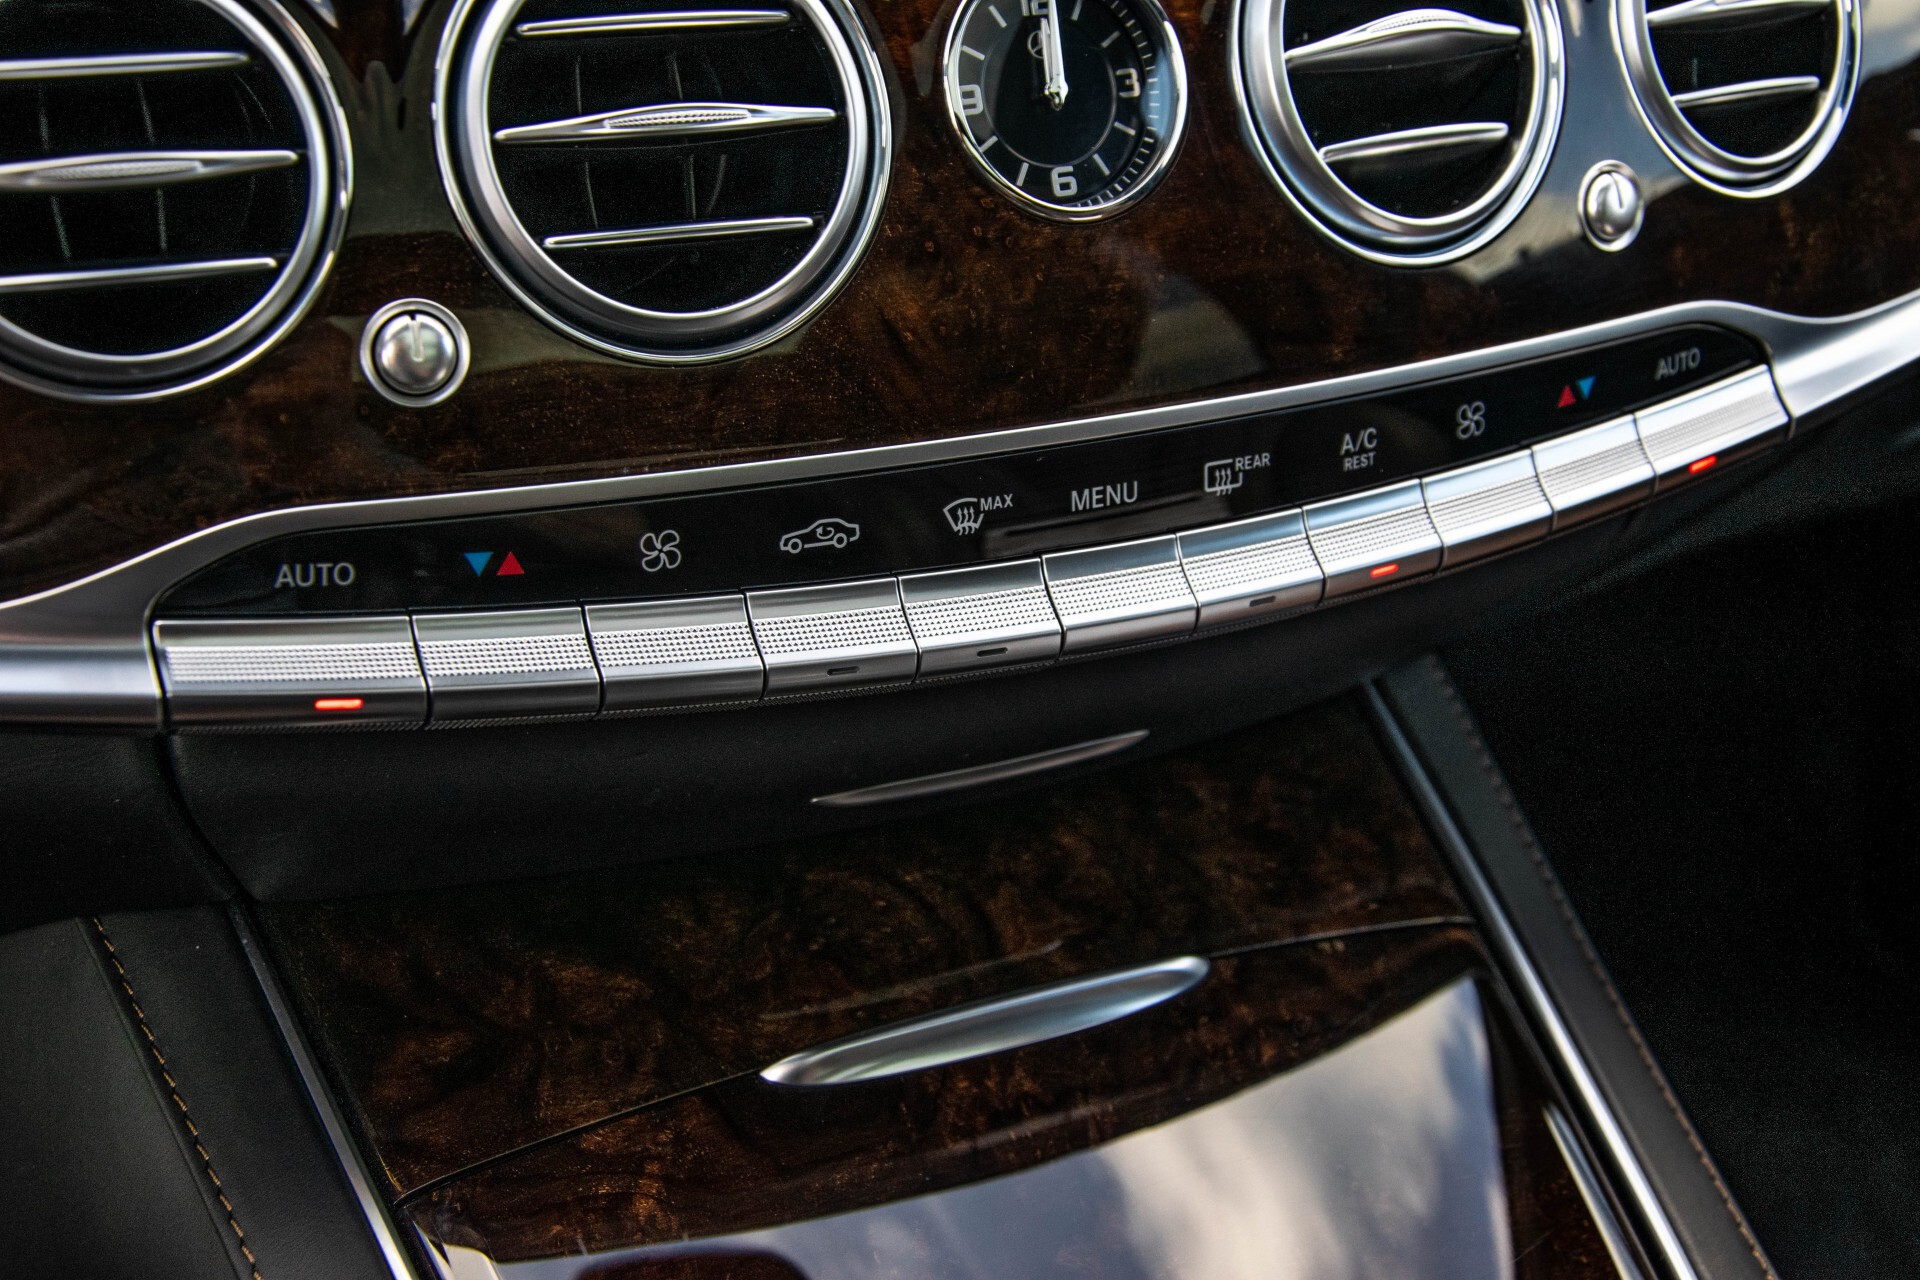 Mercedes-Benz S-Klasse 560 4-M Lang AMG Plus Exclusive Entertainment/Massage Aut9 Foto 47